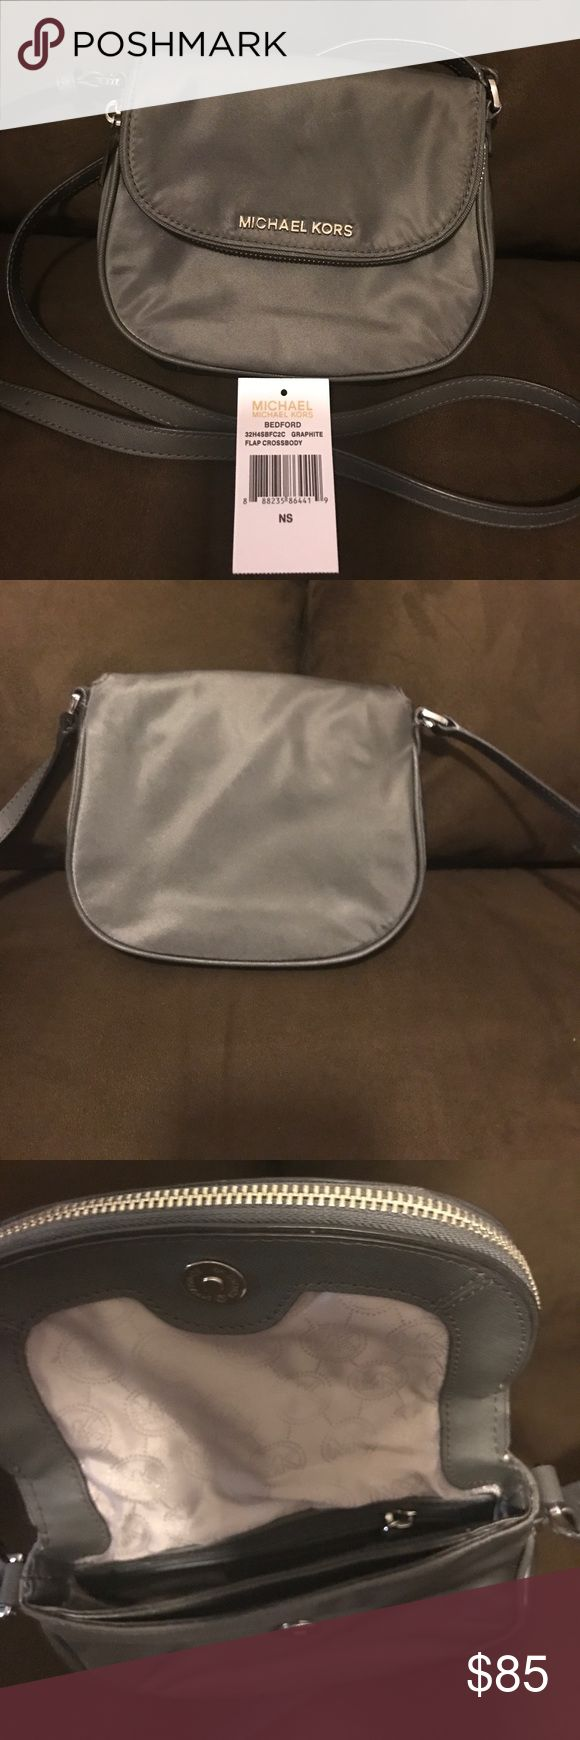 Authentic Michael Kors Crossbody Handbag! Authentic Michael Kors BEDFORD GRAPHITE FLAP CROSSBODY Handbag! Excellent Condition! Worn Once. Happy Poshing😀 Michael Kors Bags Crossbody Bags